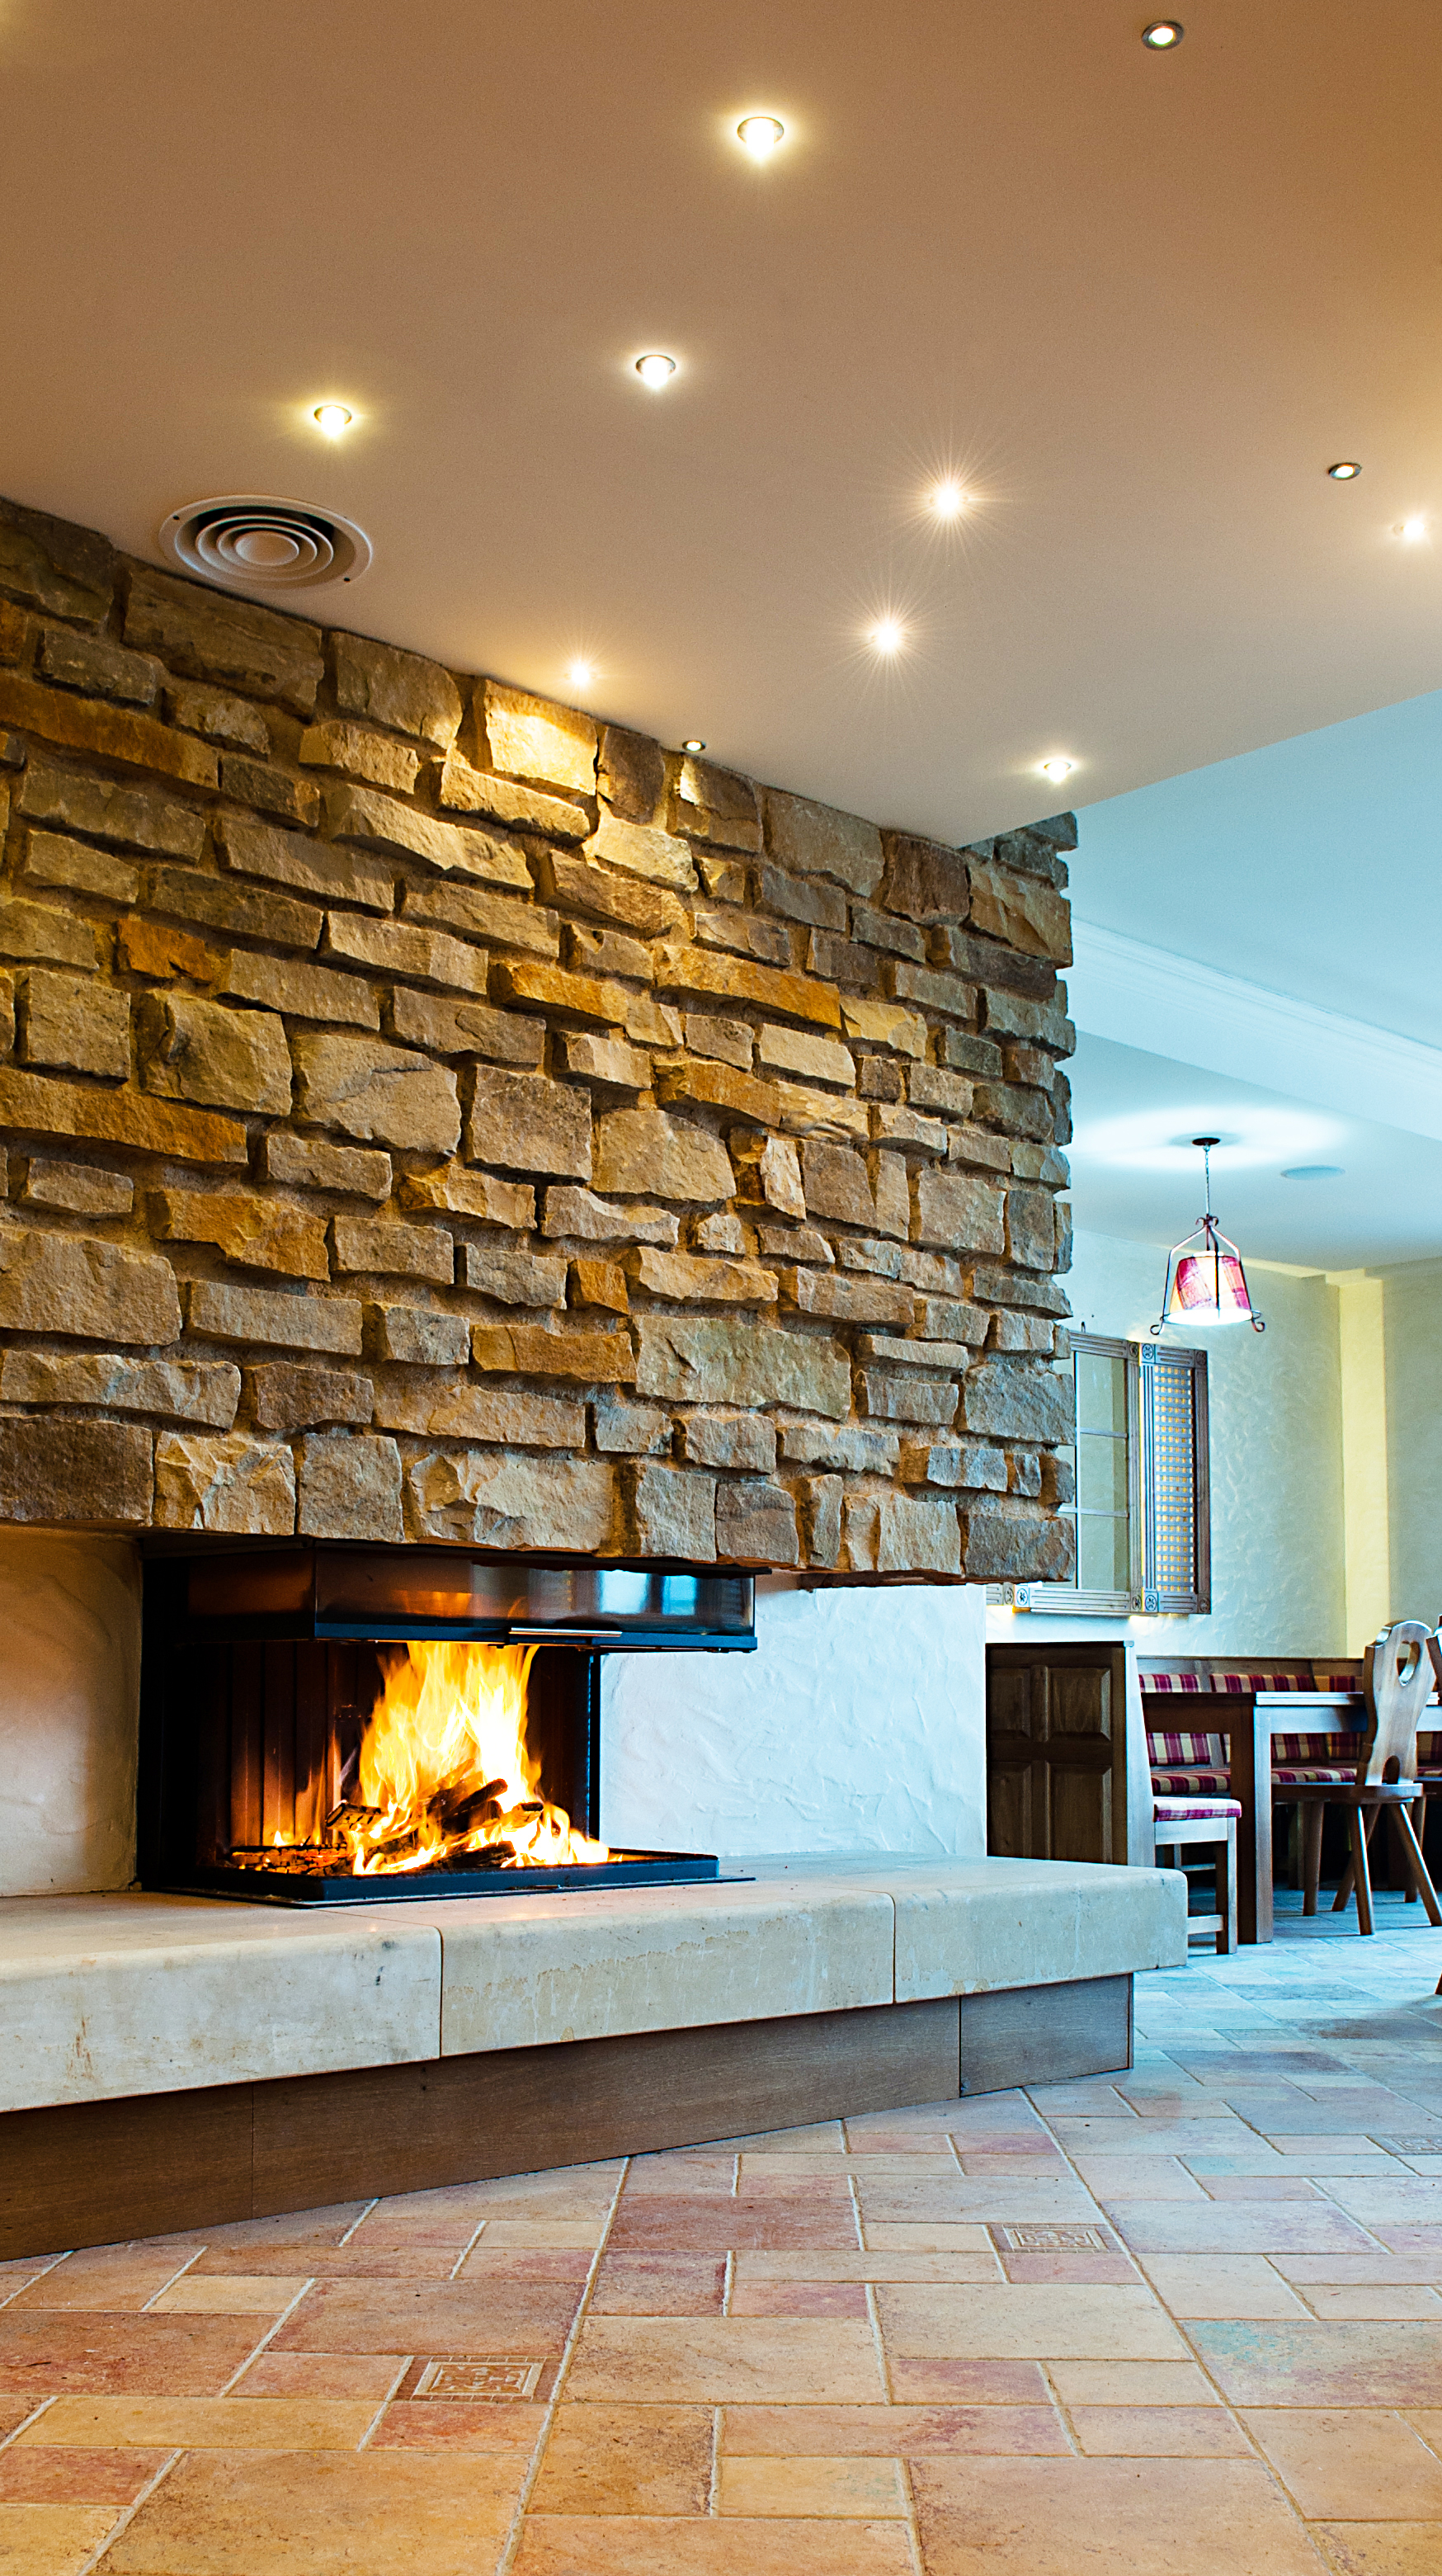 Fireplace with a stacked stone element above the hearth